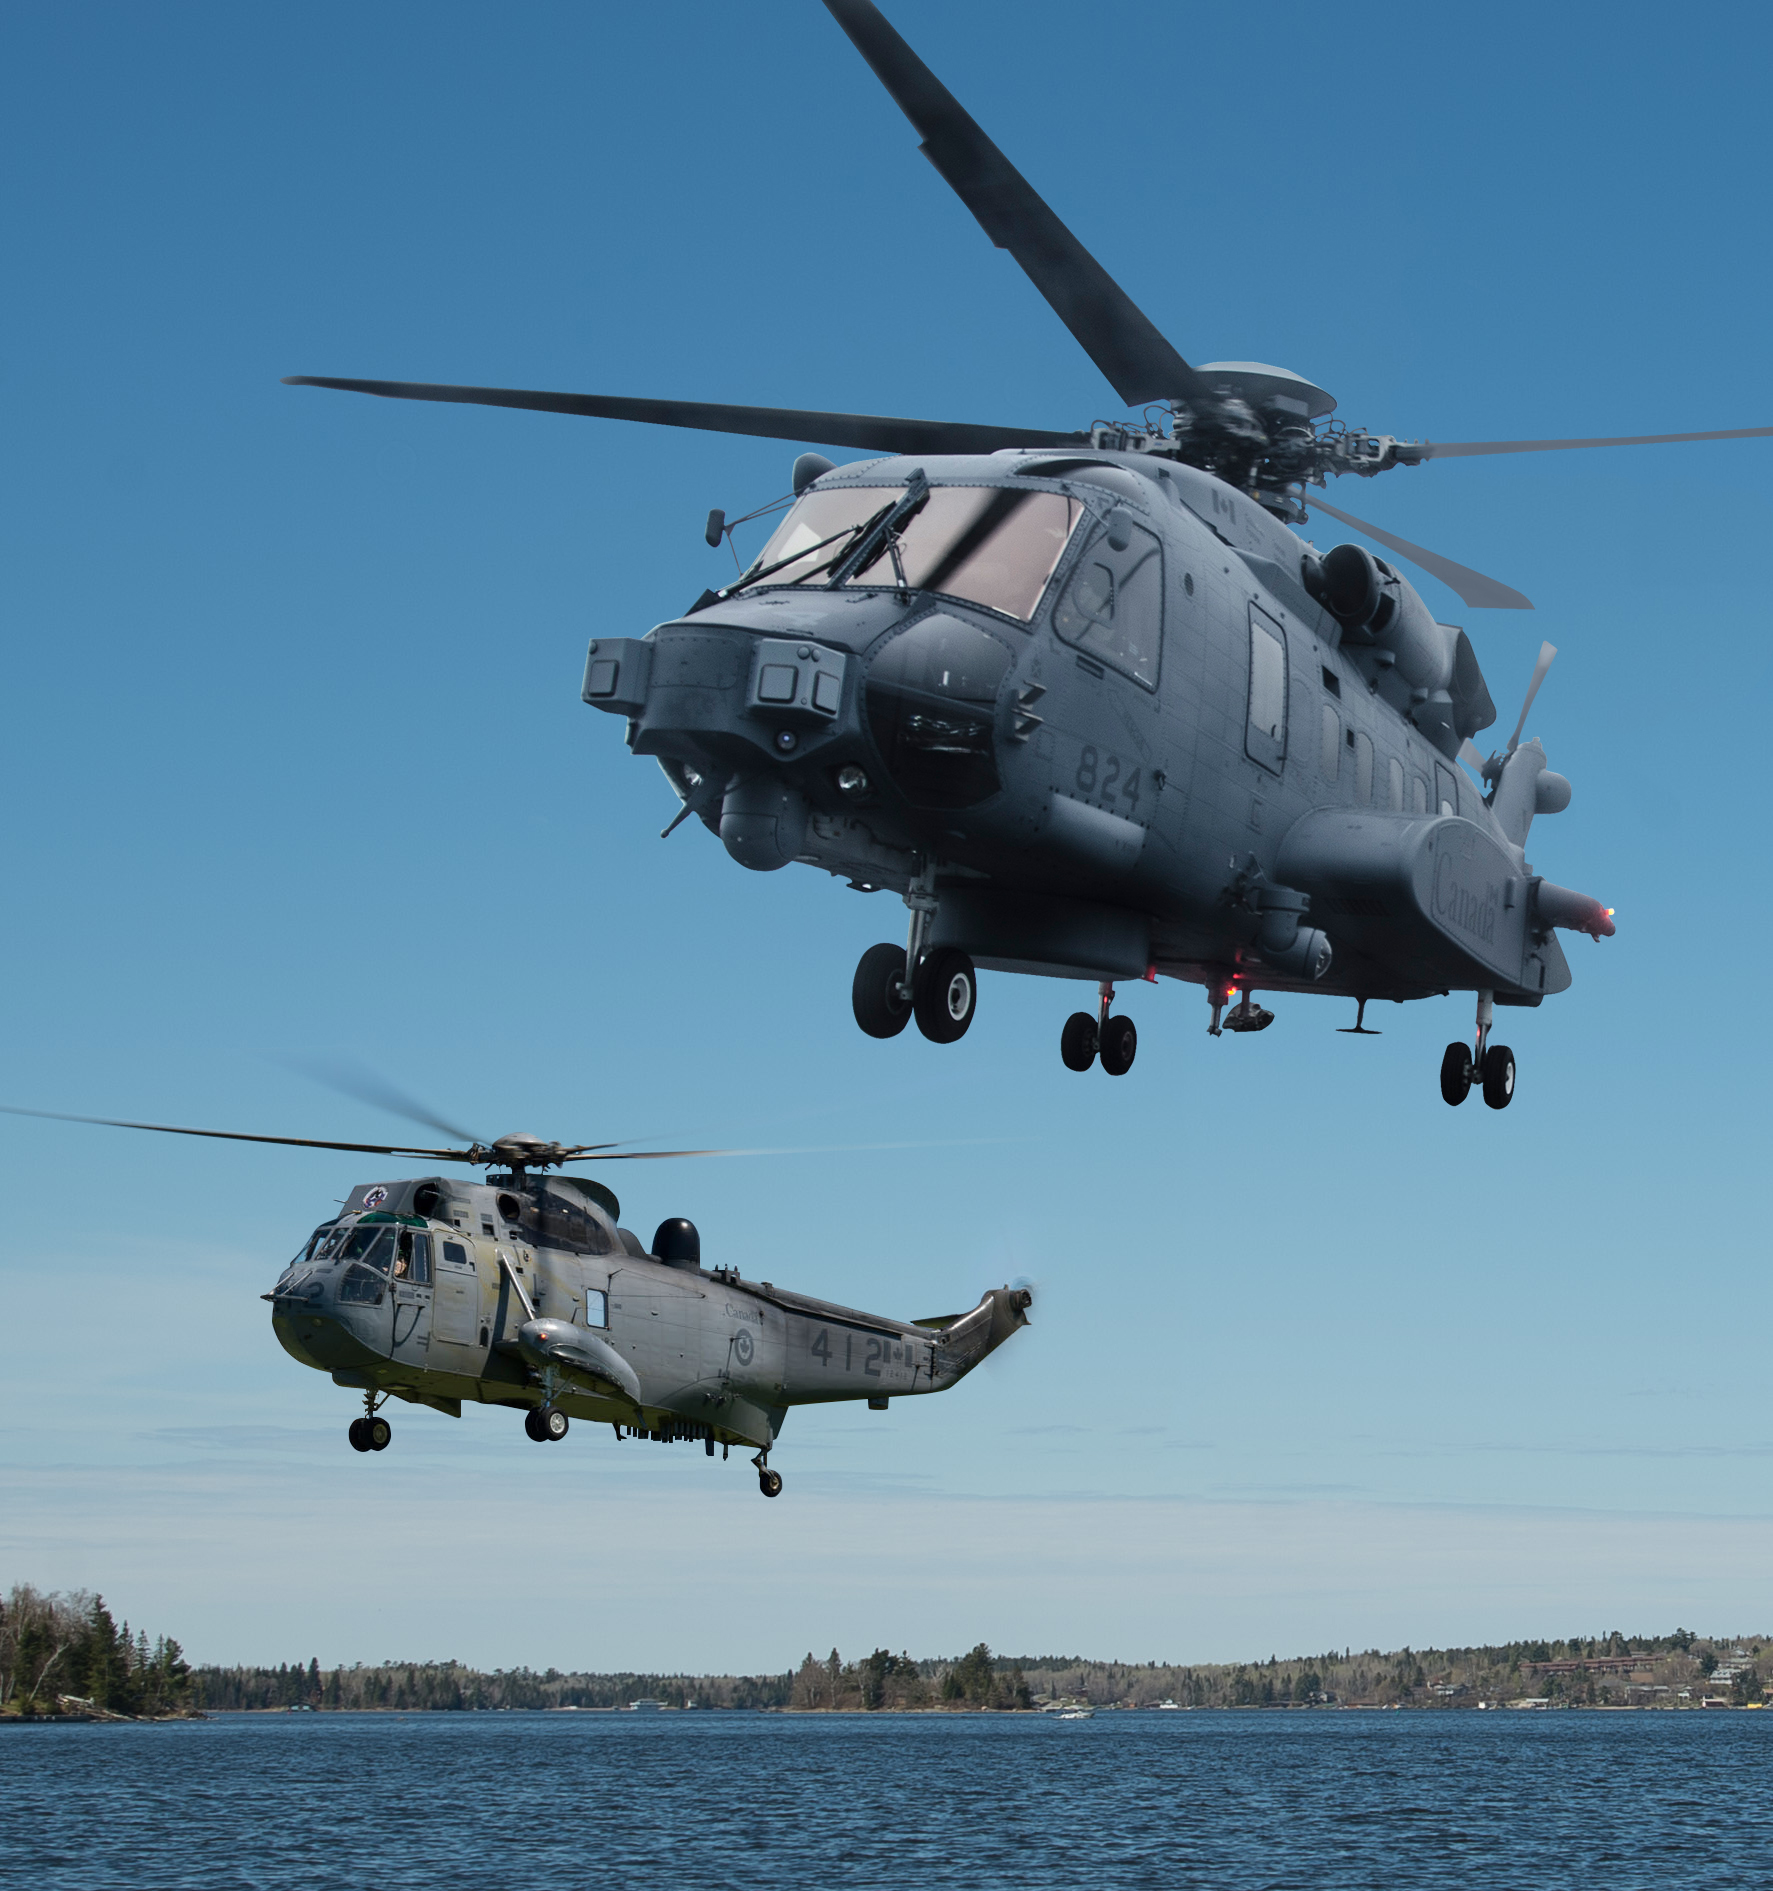 Maritime helicopter aircrew have begun training to convert from the CH-124 Sea King helicopter (background) to the CH-148 Cyclone at 406 Squadron at 12 Wing Shearwater, Nova Scotia. PHOTO MONTAGE: Corporal Alana Morin